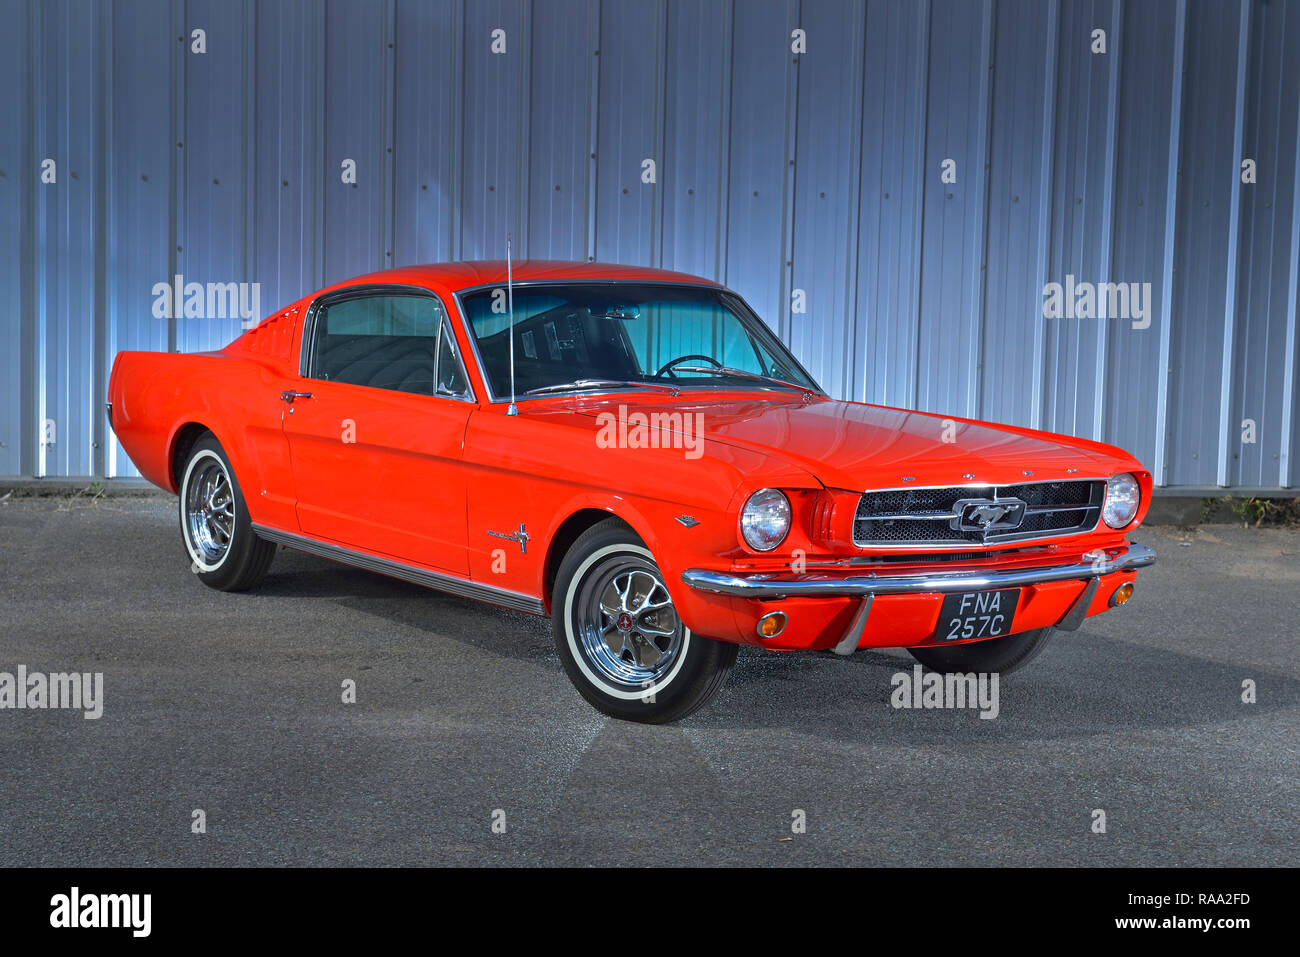 Don't miss what's happening in your neighborhood. Classic Ford Mustang Fastback Stock Photo Alamy